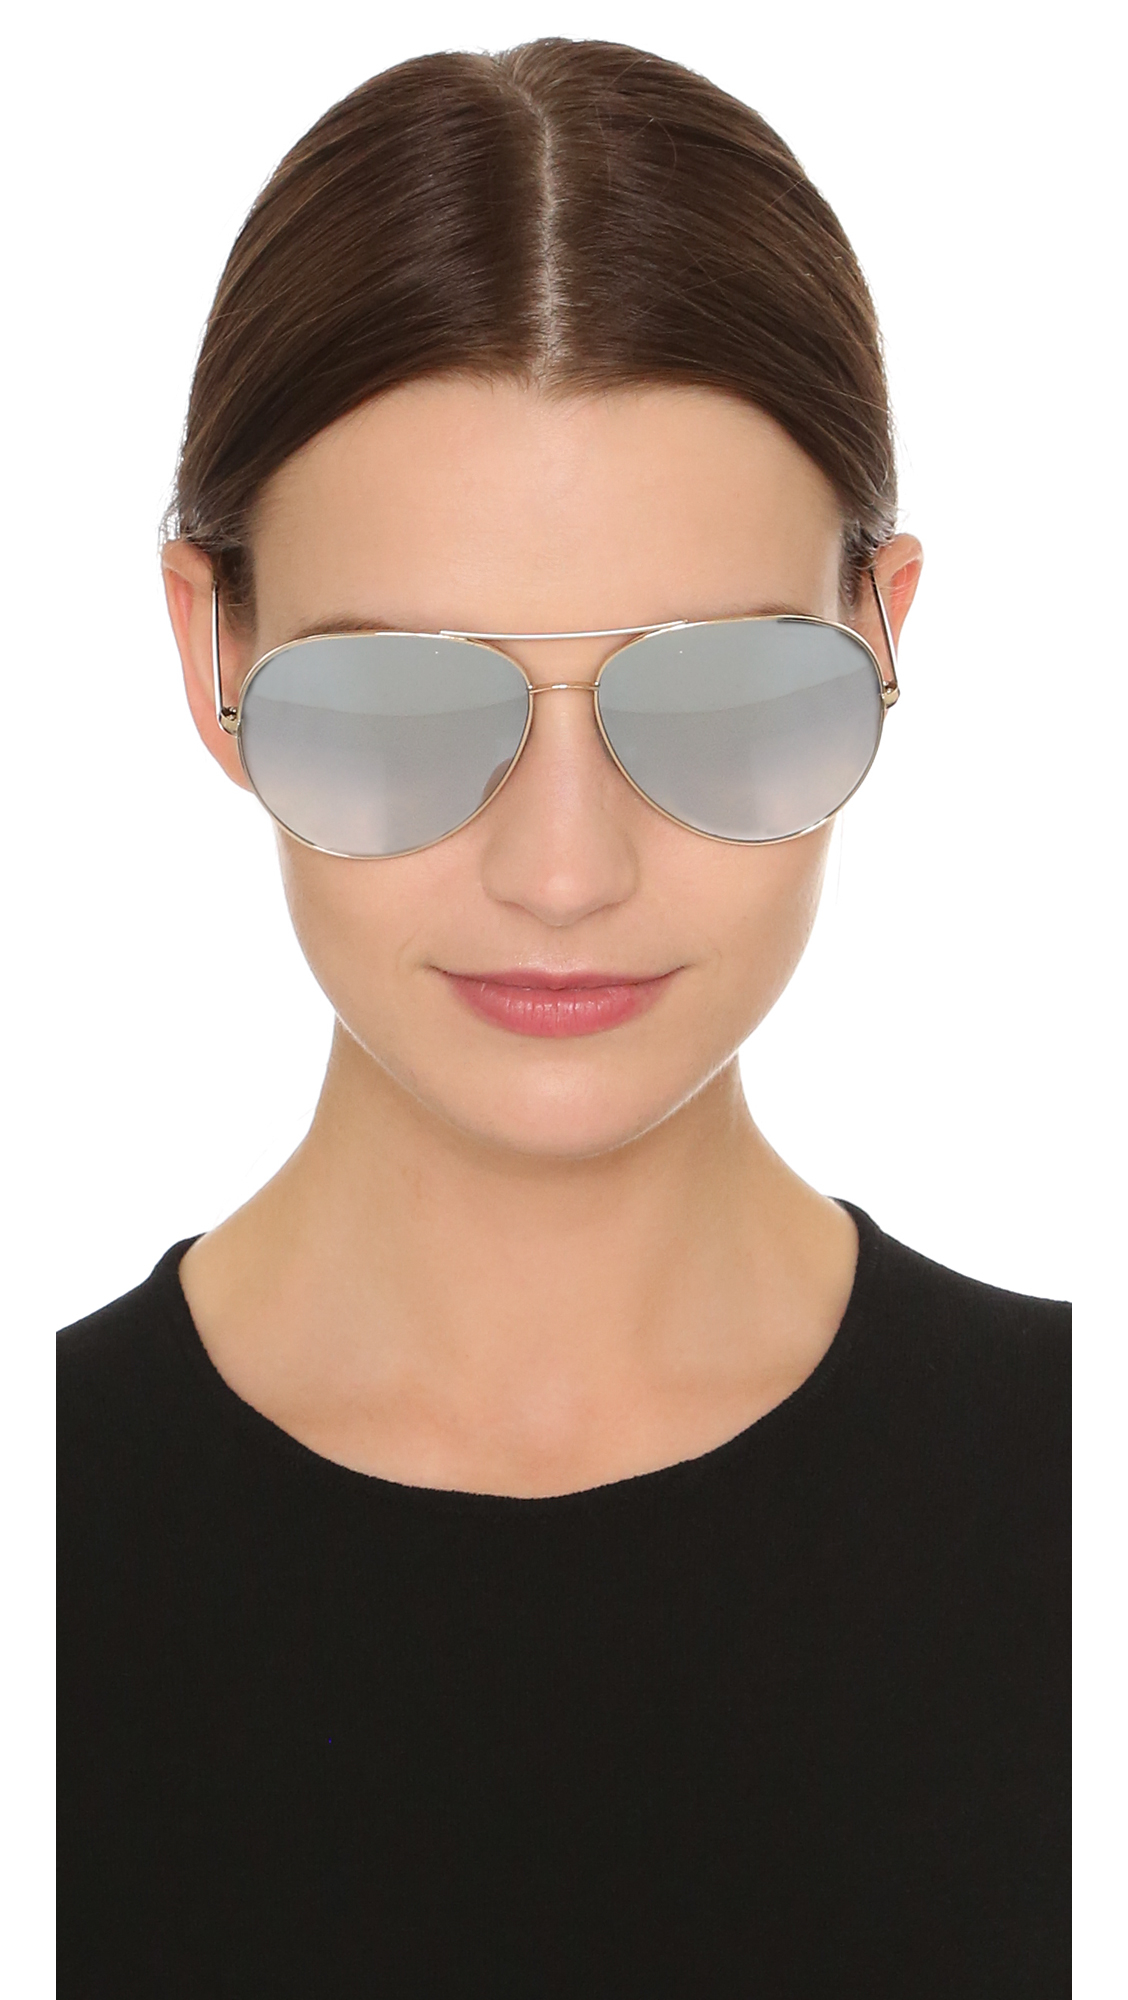 d3e90ad040af Lyst - Oliver Peoples Sayer Sunglasses in Metallic